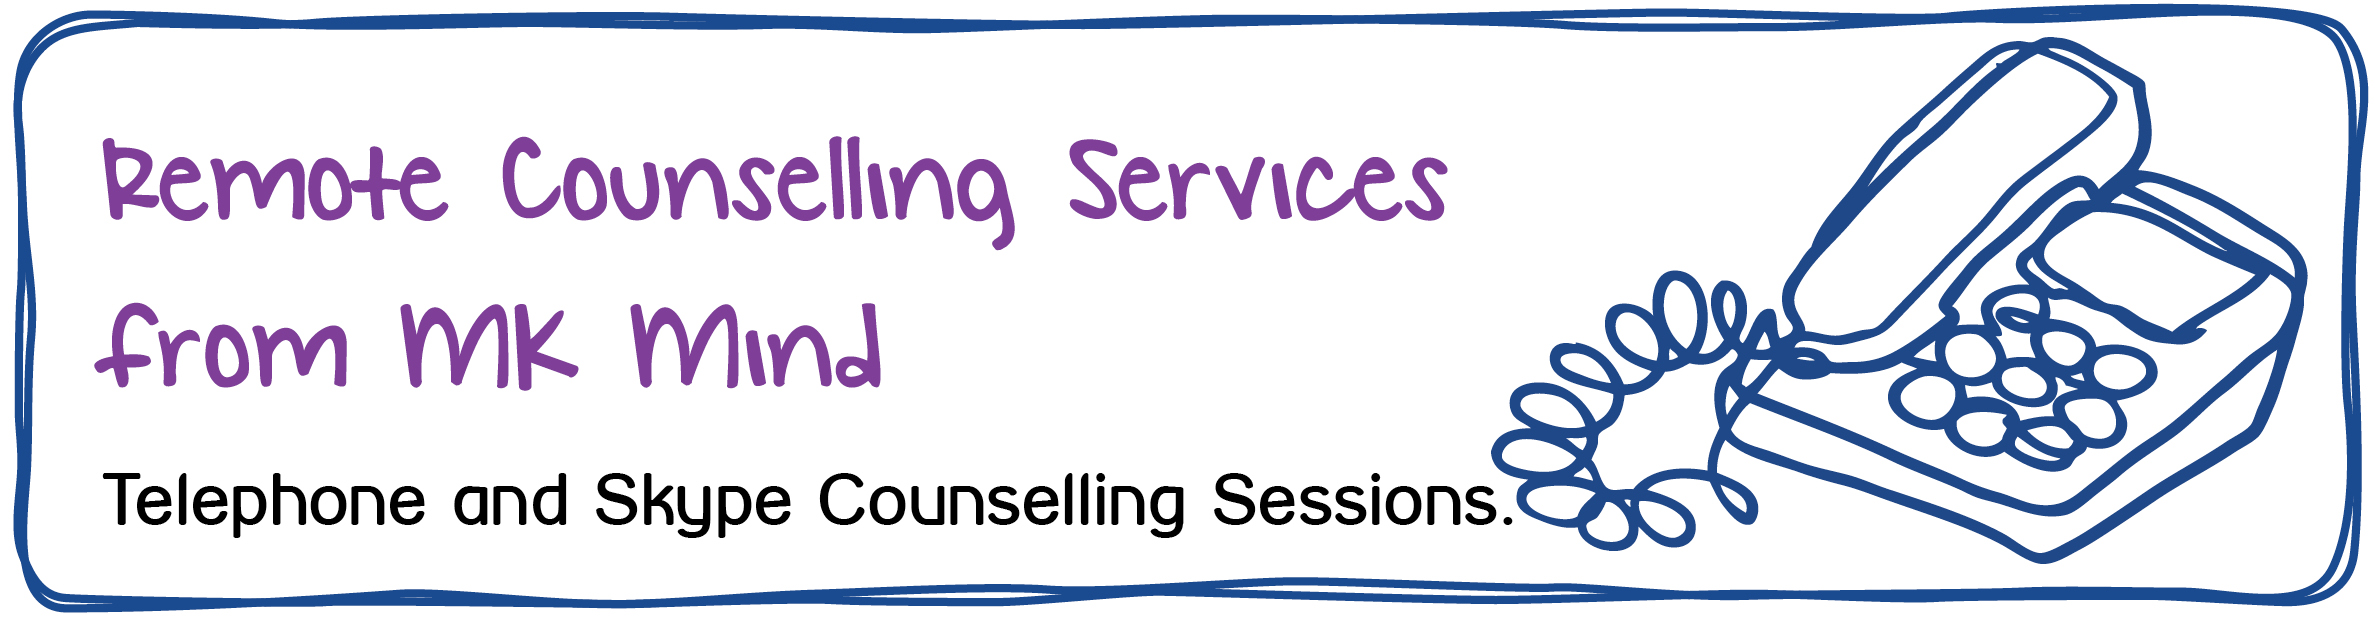 Remote Counselling Sessions from MK Mind. Telehpone and Phone Counselling Sessions.